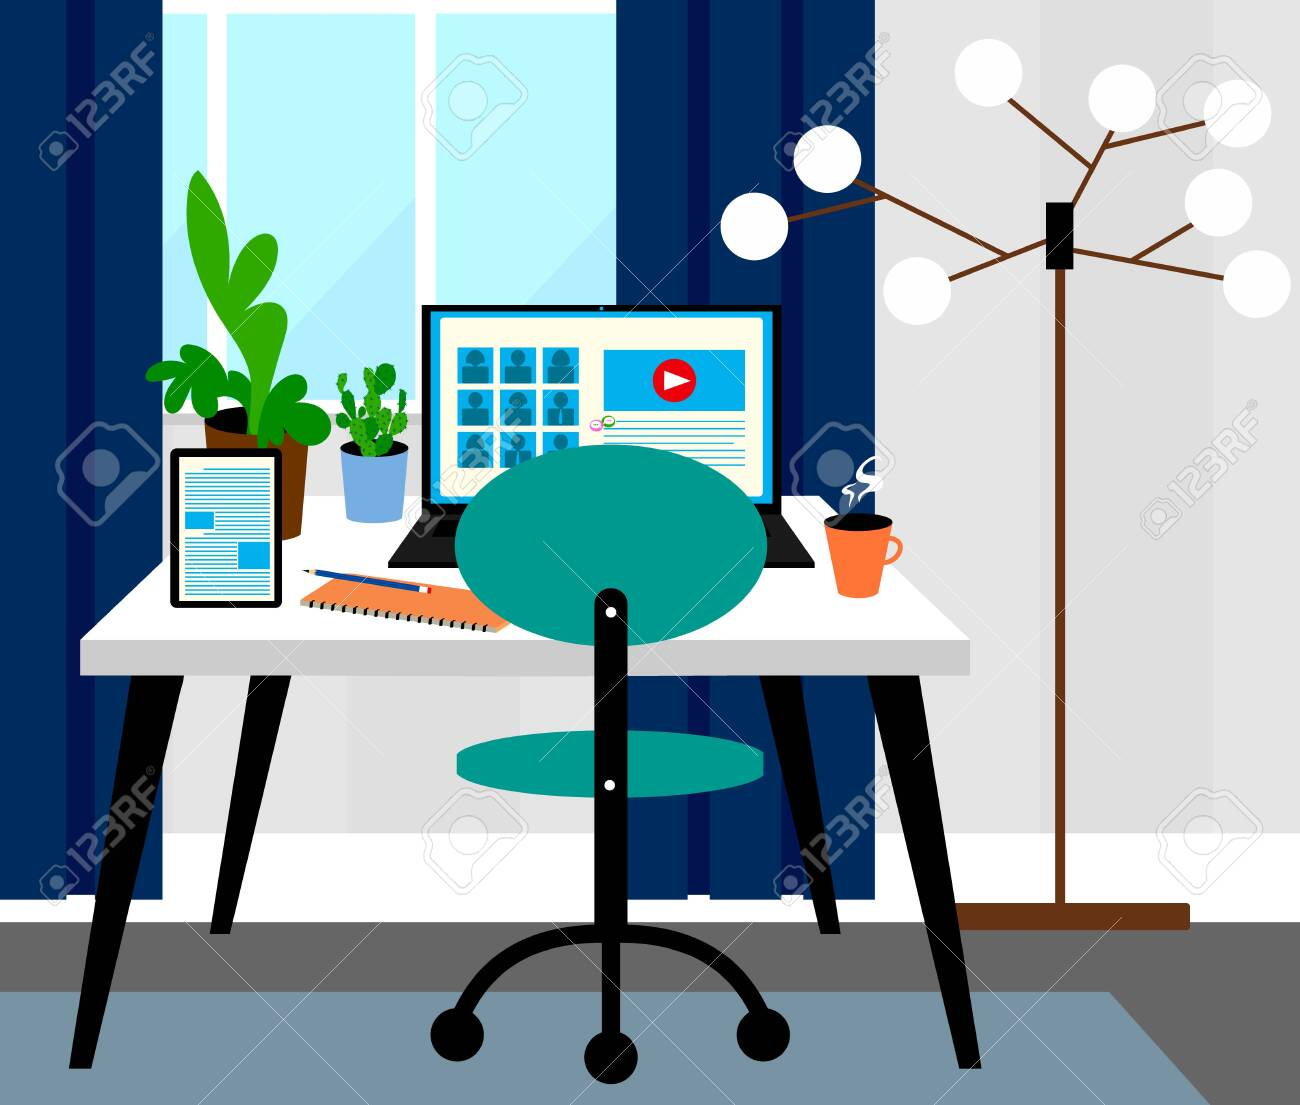 Home Office Room Interior Design Video Conferences Concept Royalty Free Cliparts Vectors And Stock Illustration Image 146138628